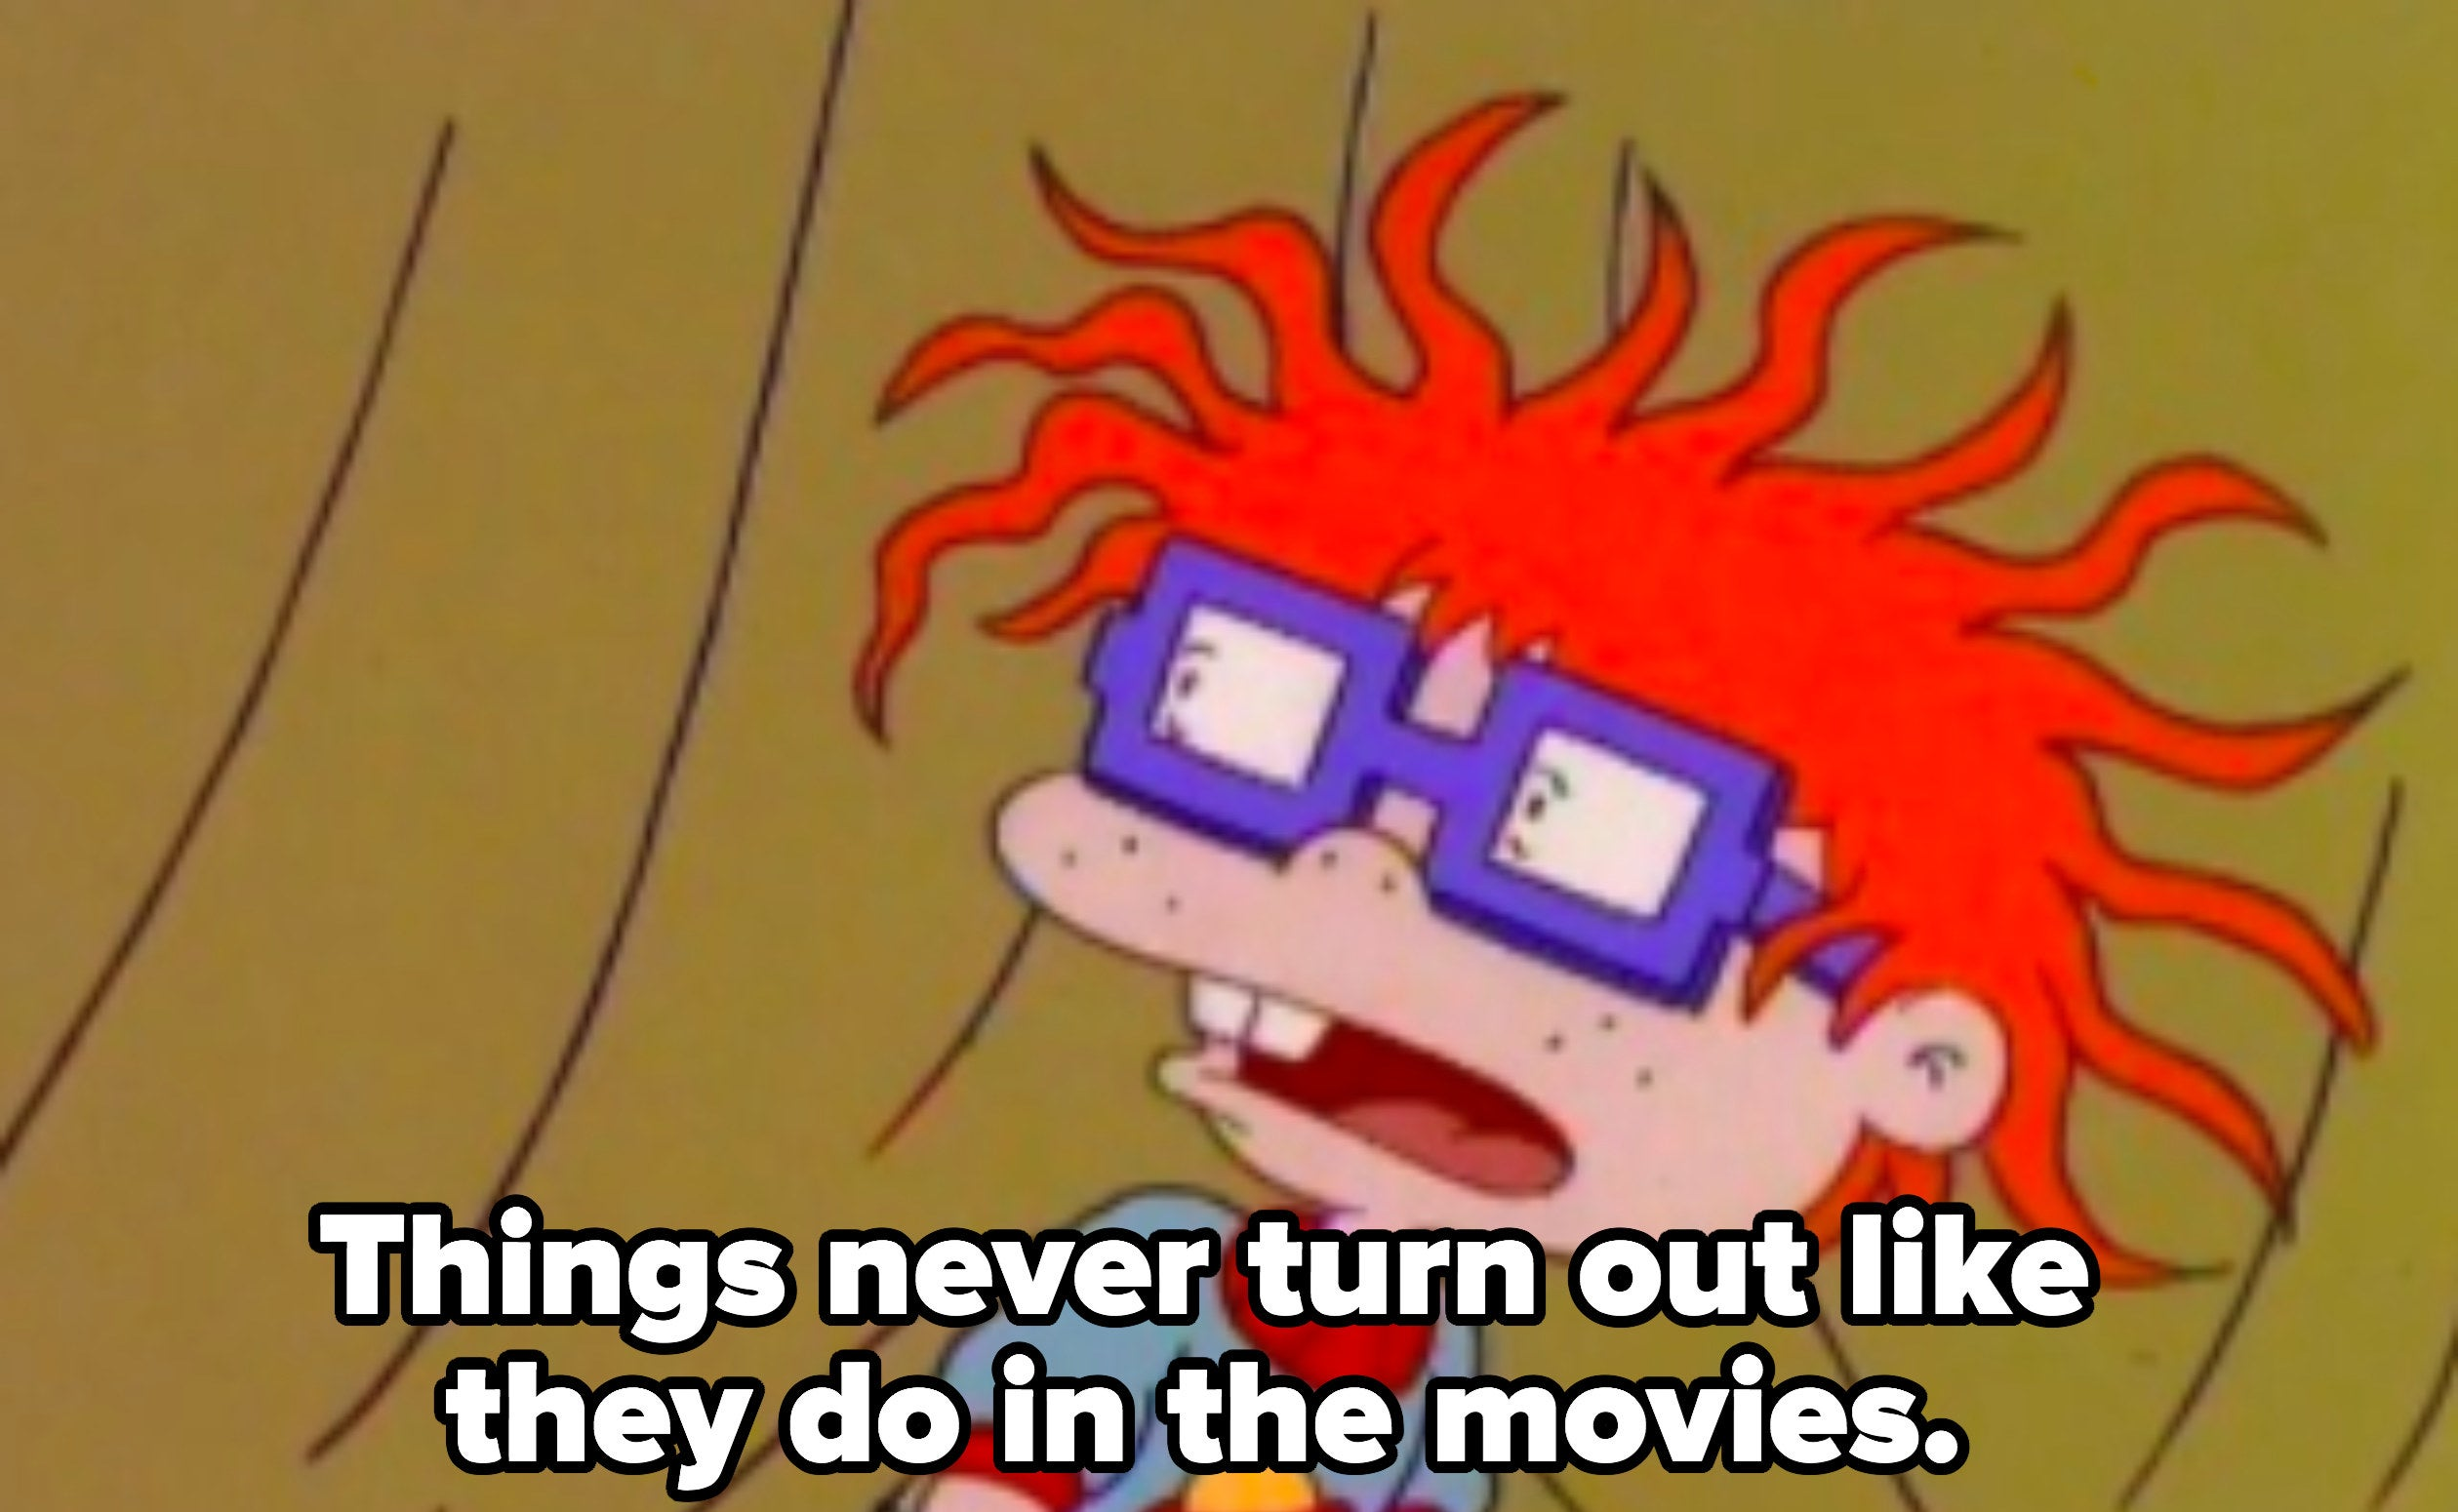 """Chuckie: """"Things never turn out like they do in the movies"""""""